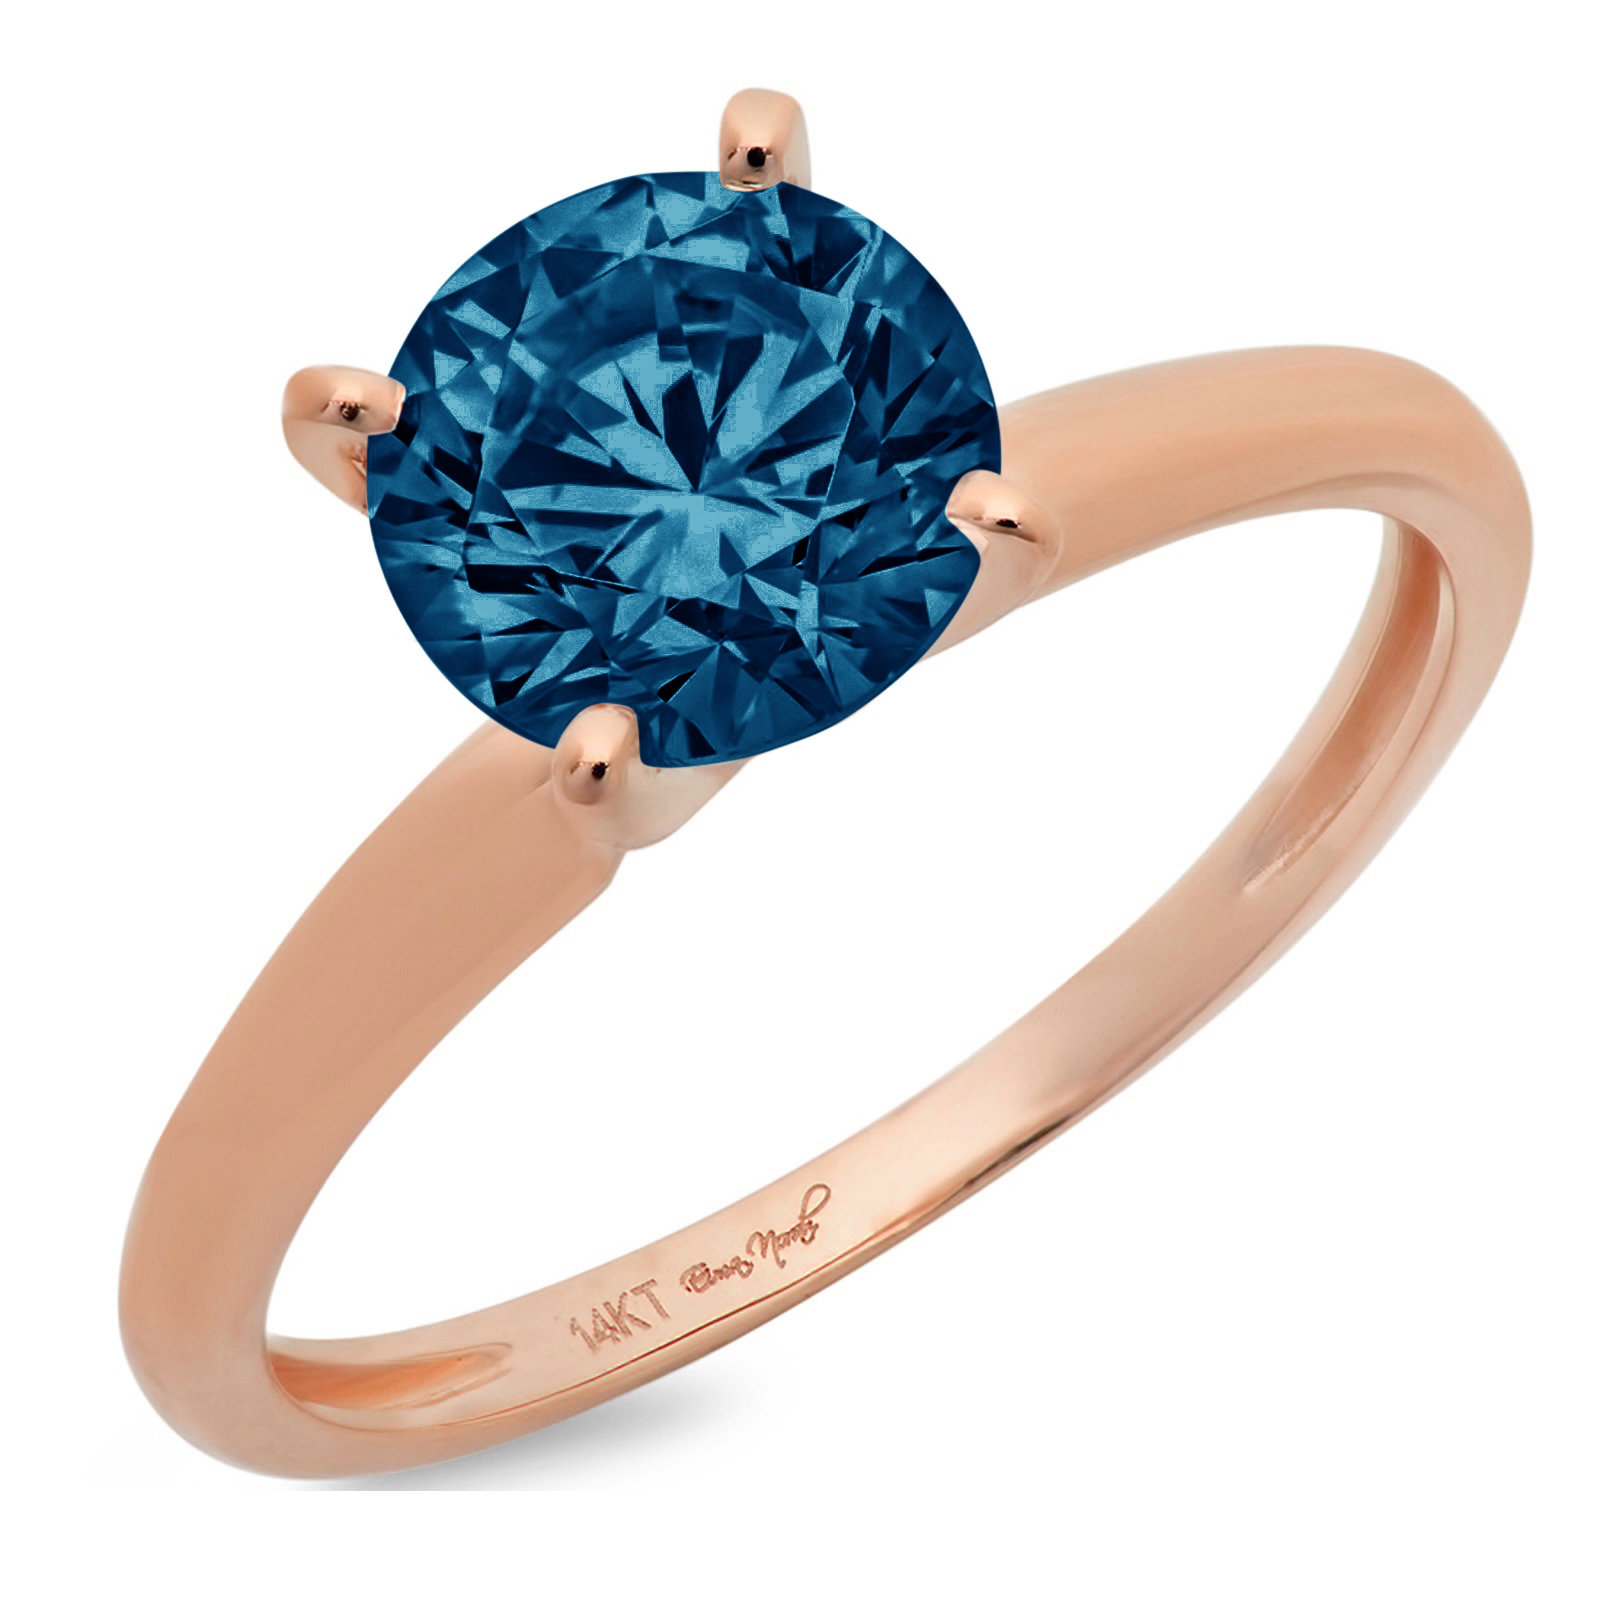 1 Ct Round Cut Natural London Blue Topaz Classic Wedding Engagement Bridal Promise Designer Ring Solid 14K Rose Gold